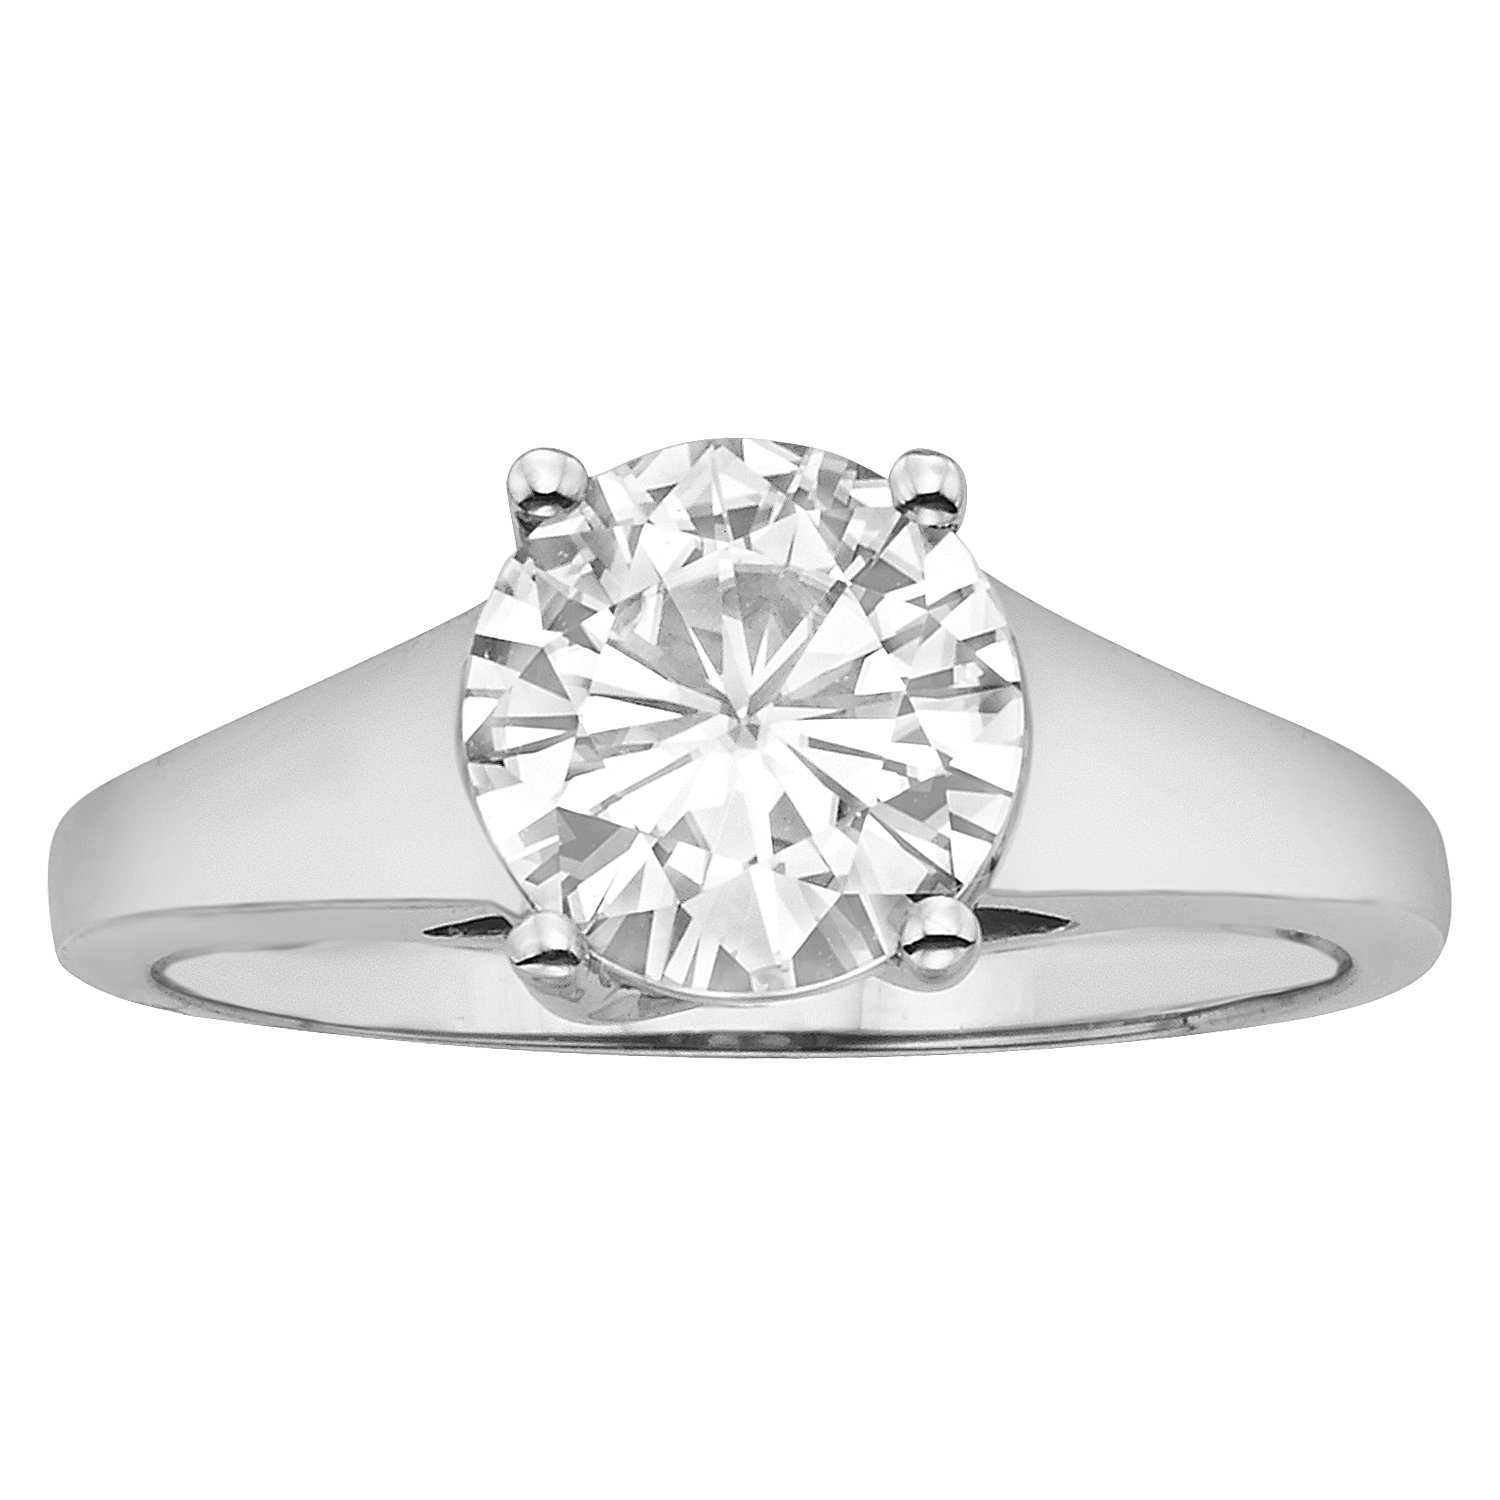 Forever Brilliant 8.0mm Moissanite Solitaire Engagement Ring - size 6, 1.90ct DEW By Charles & Colvard by Charles & Colvard